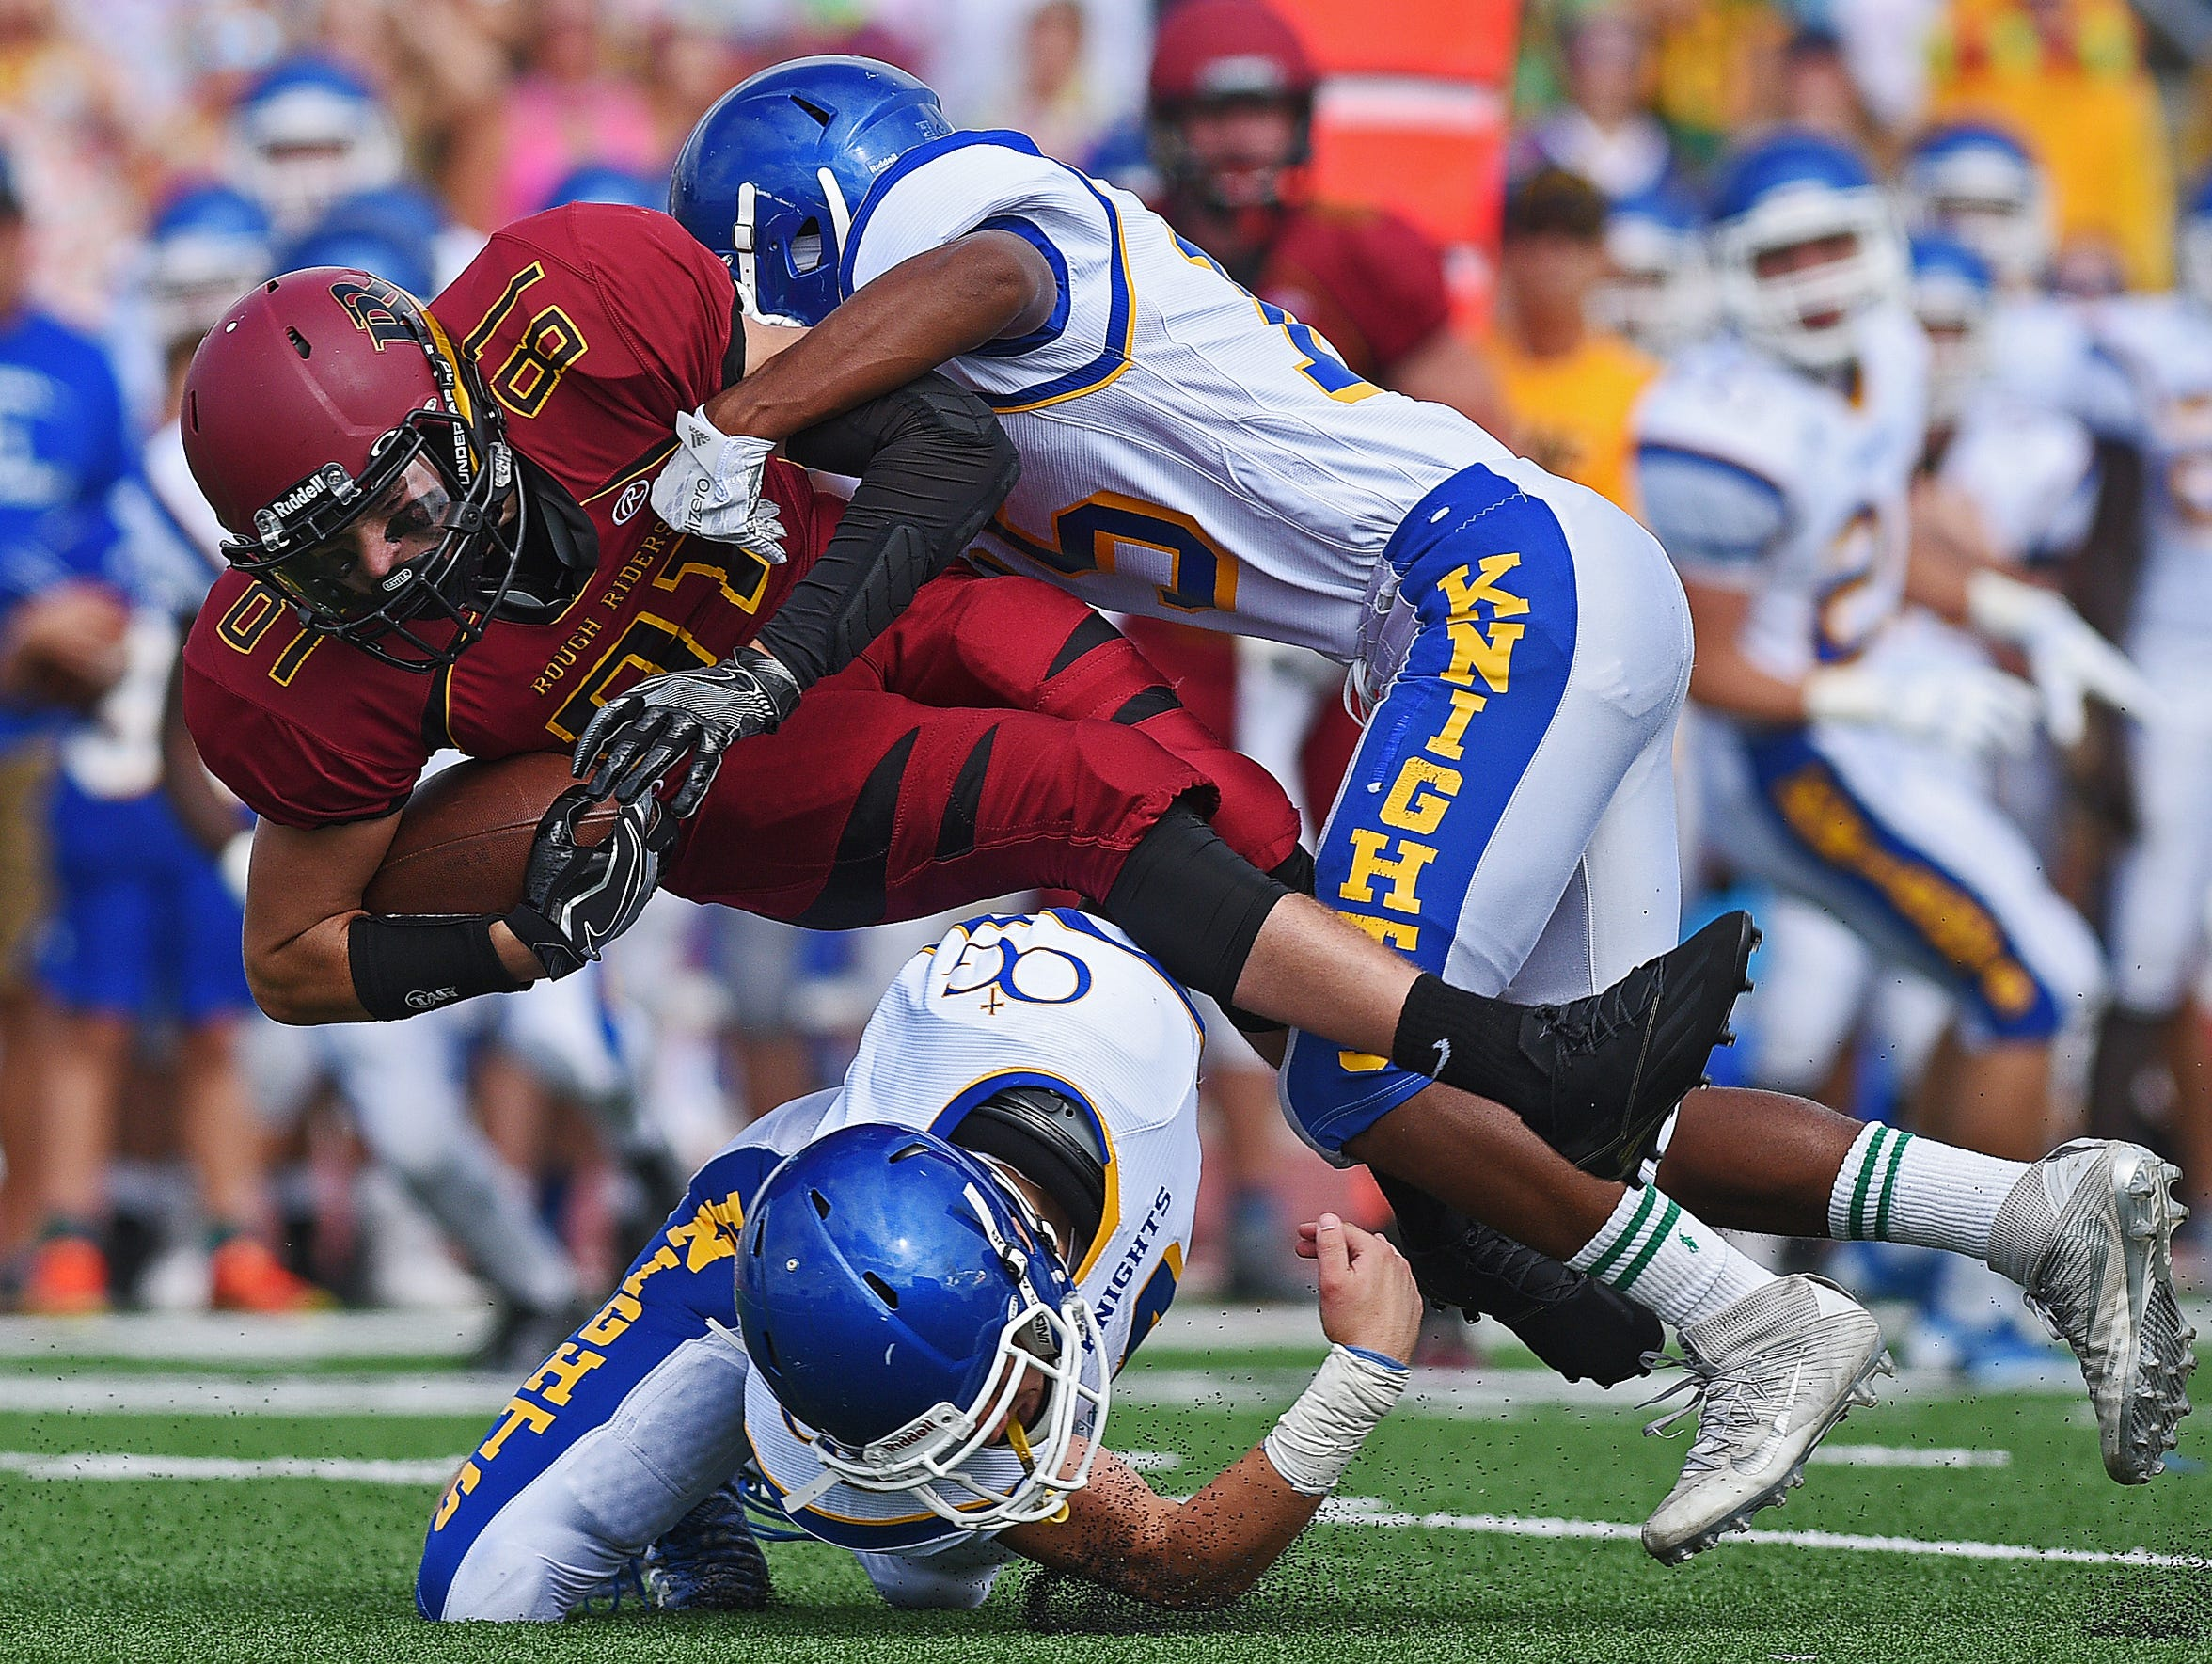 Roosevelt's Austin Johnson (81) is brought down by